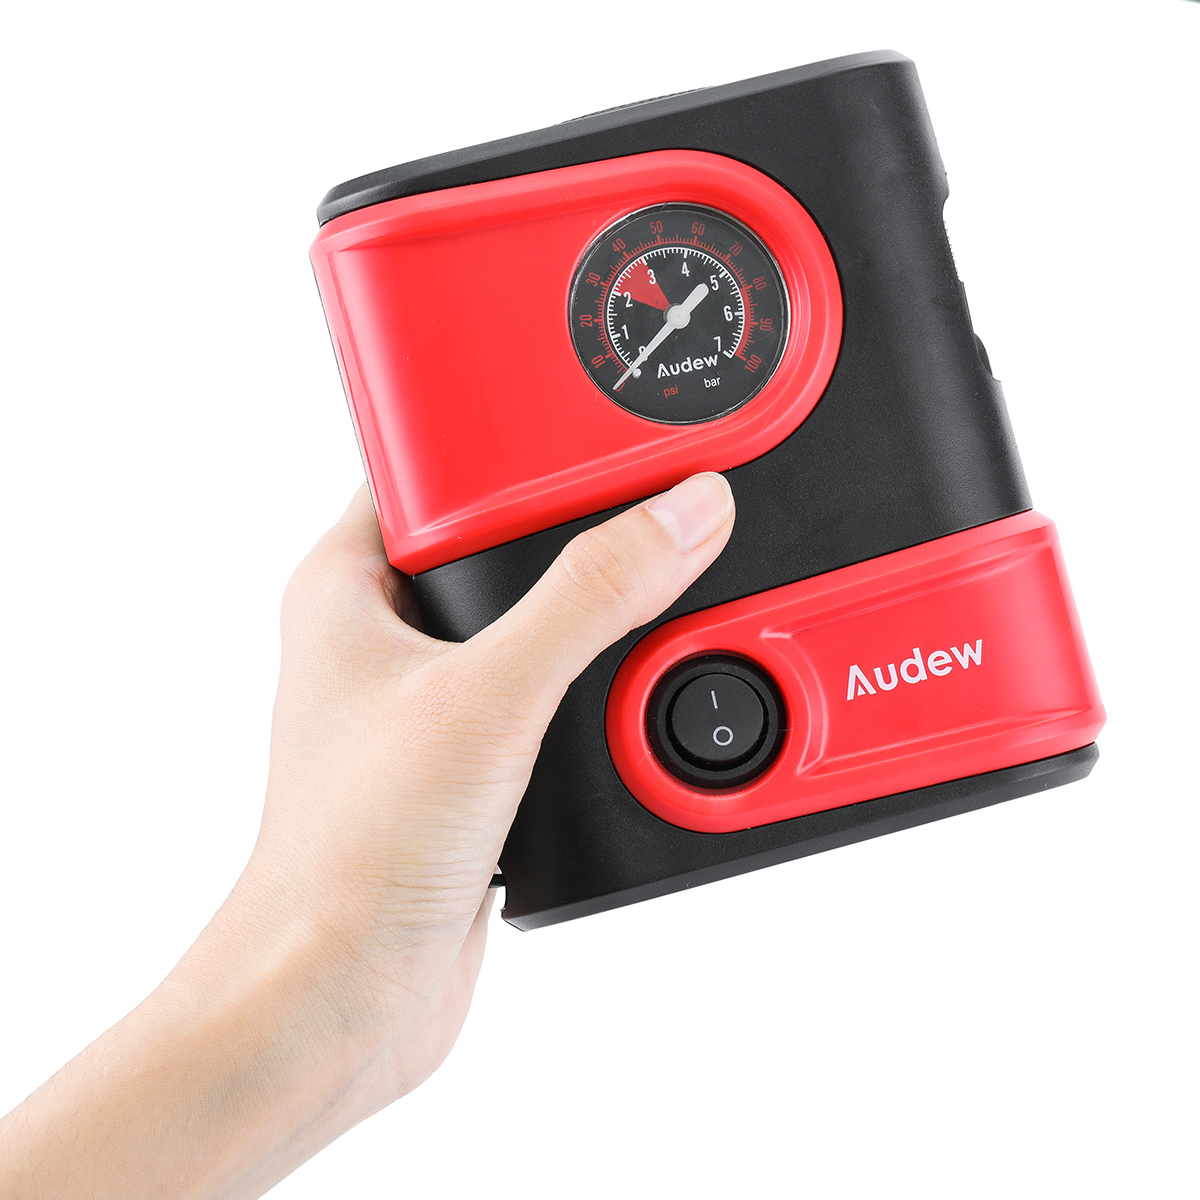 Car Tire Inflator, Audew Portable Mini Air Compressor Pump with Gauge, 12V DC Auto Tire Pump for Car, Bicycle, Motorcycle, SUV,Basketball and Other Inflatables